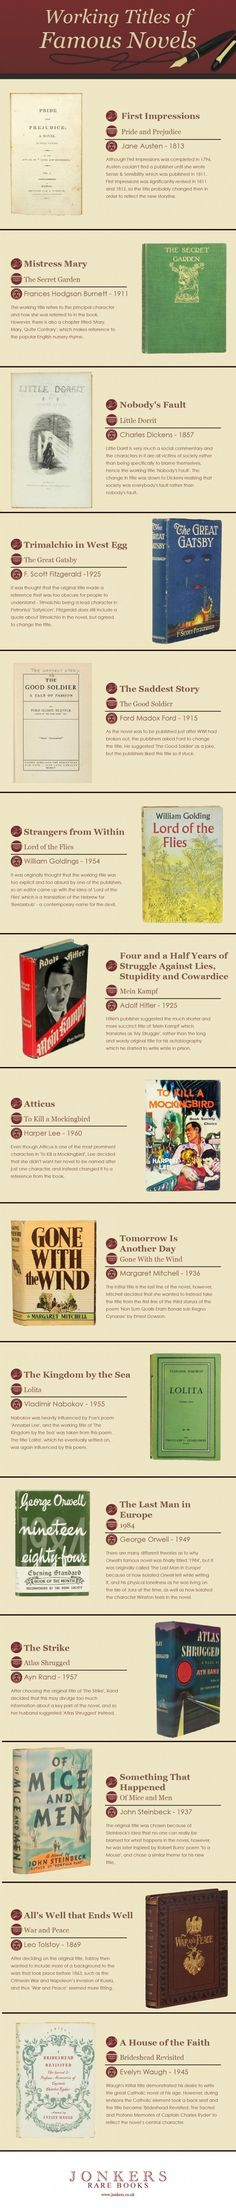 Awful Titles Famous Authors Almost Gave Their Novels | Huffington Post